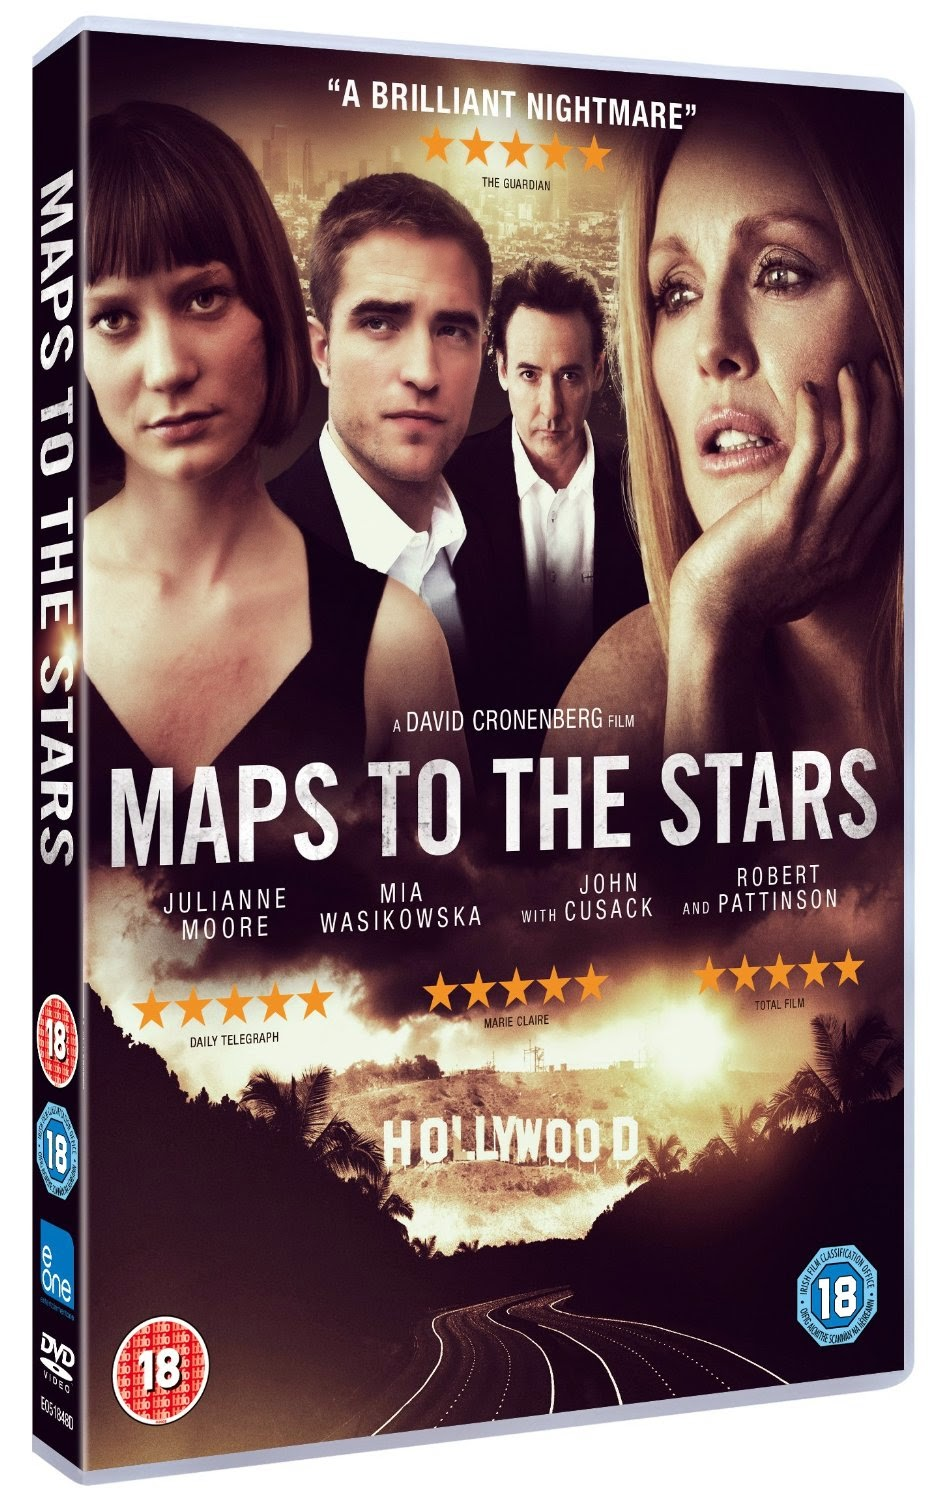 http://www.amazon.co.uk/Maps-Stars-DVD-Julianne-Moore/dp/B00O7S4U5W/ref=sr_1_1_twi_1?ie=UTF8&qid=1422900239&sr=8-1&keywords=maps+to+the+stars